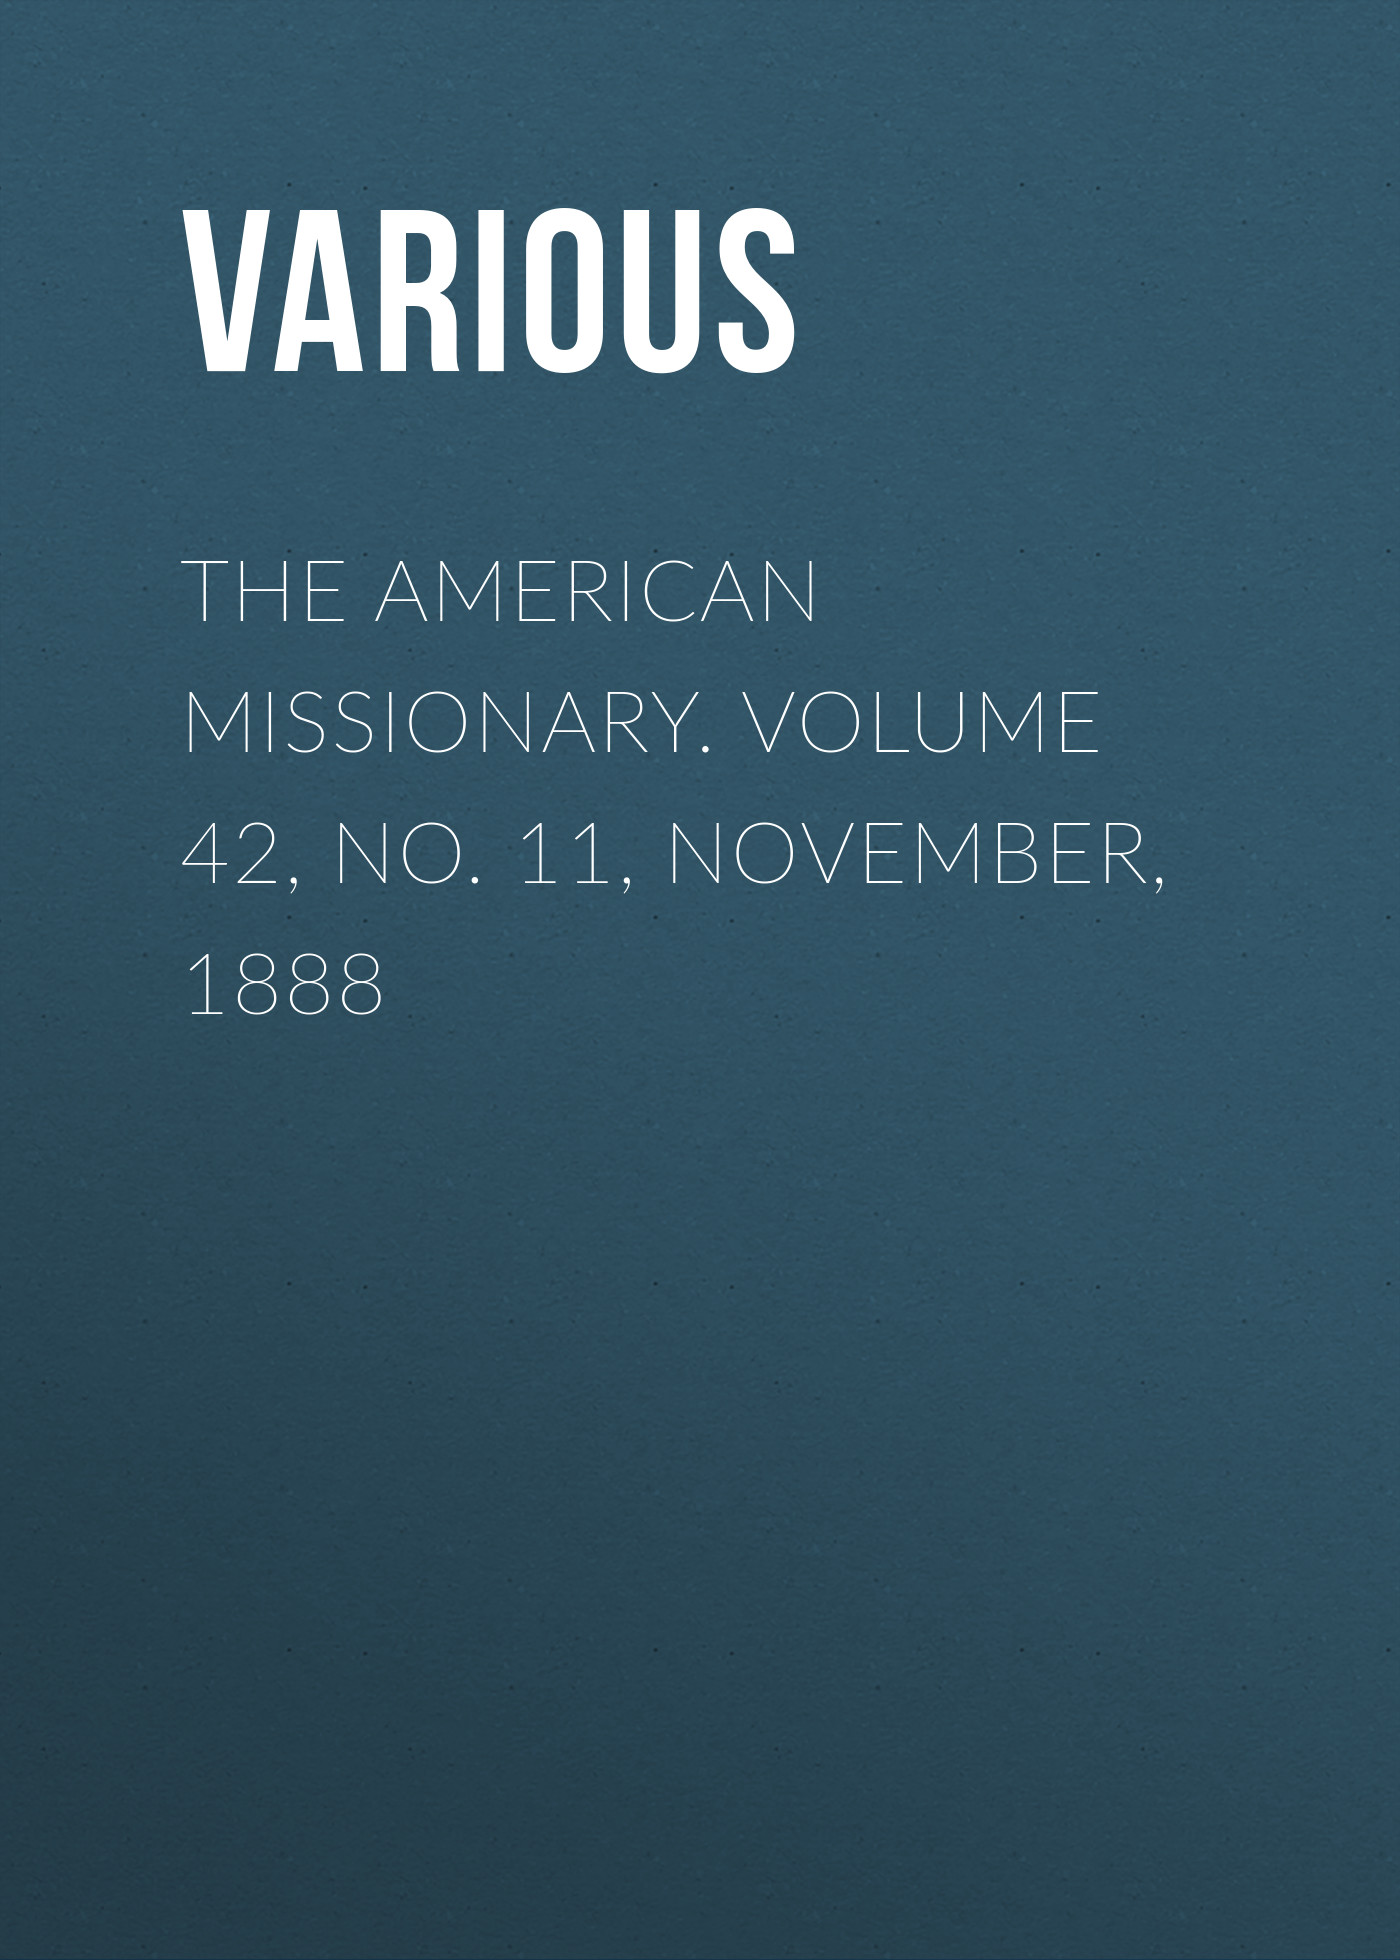 The American Missionary. Volume 42, No. 11, November, 1888